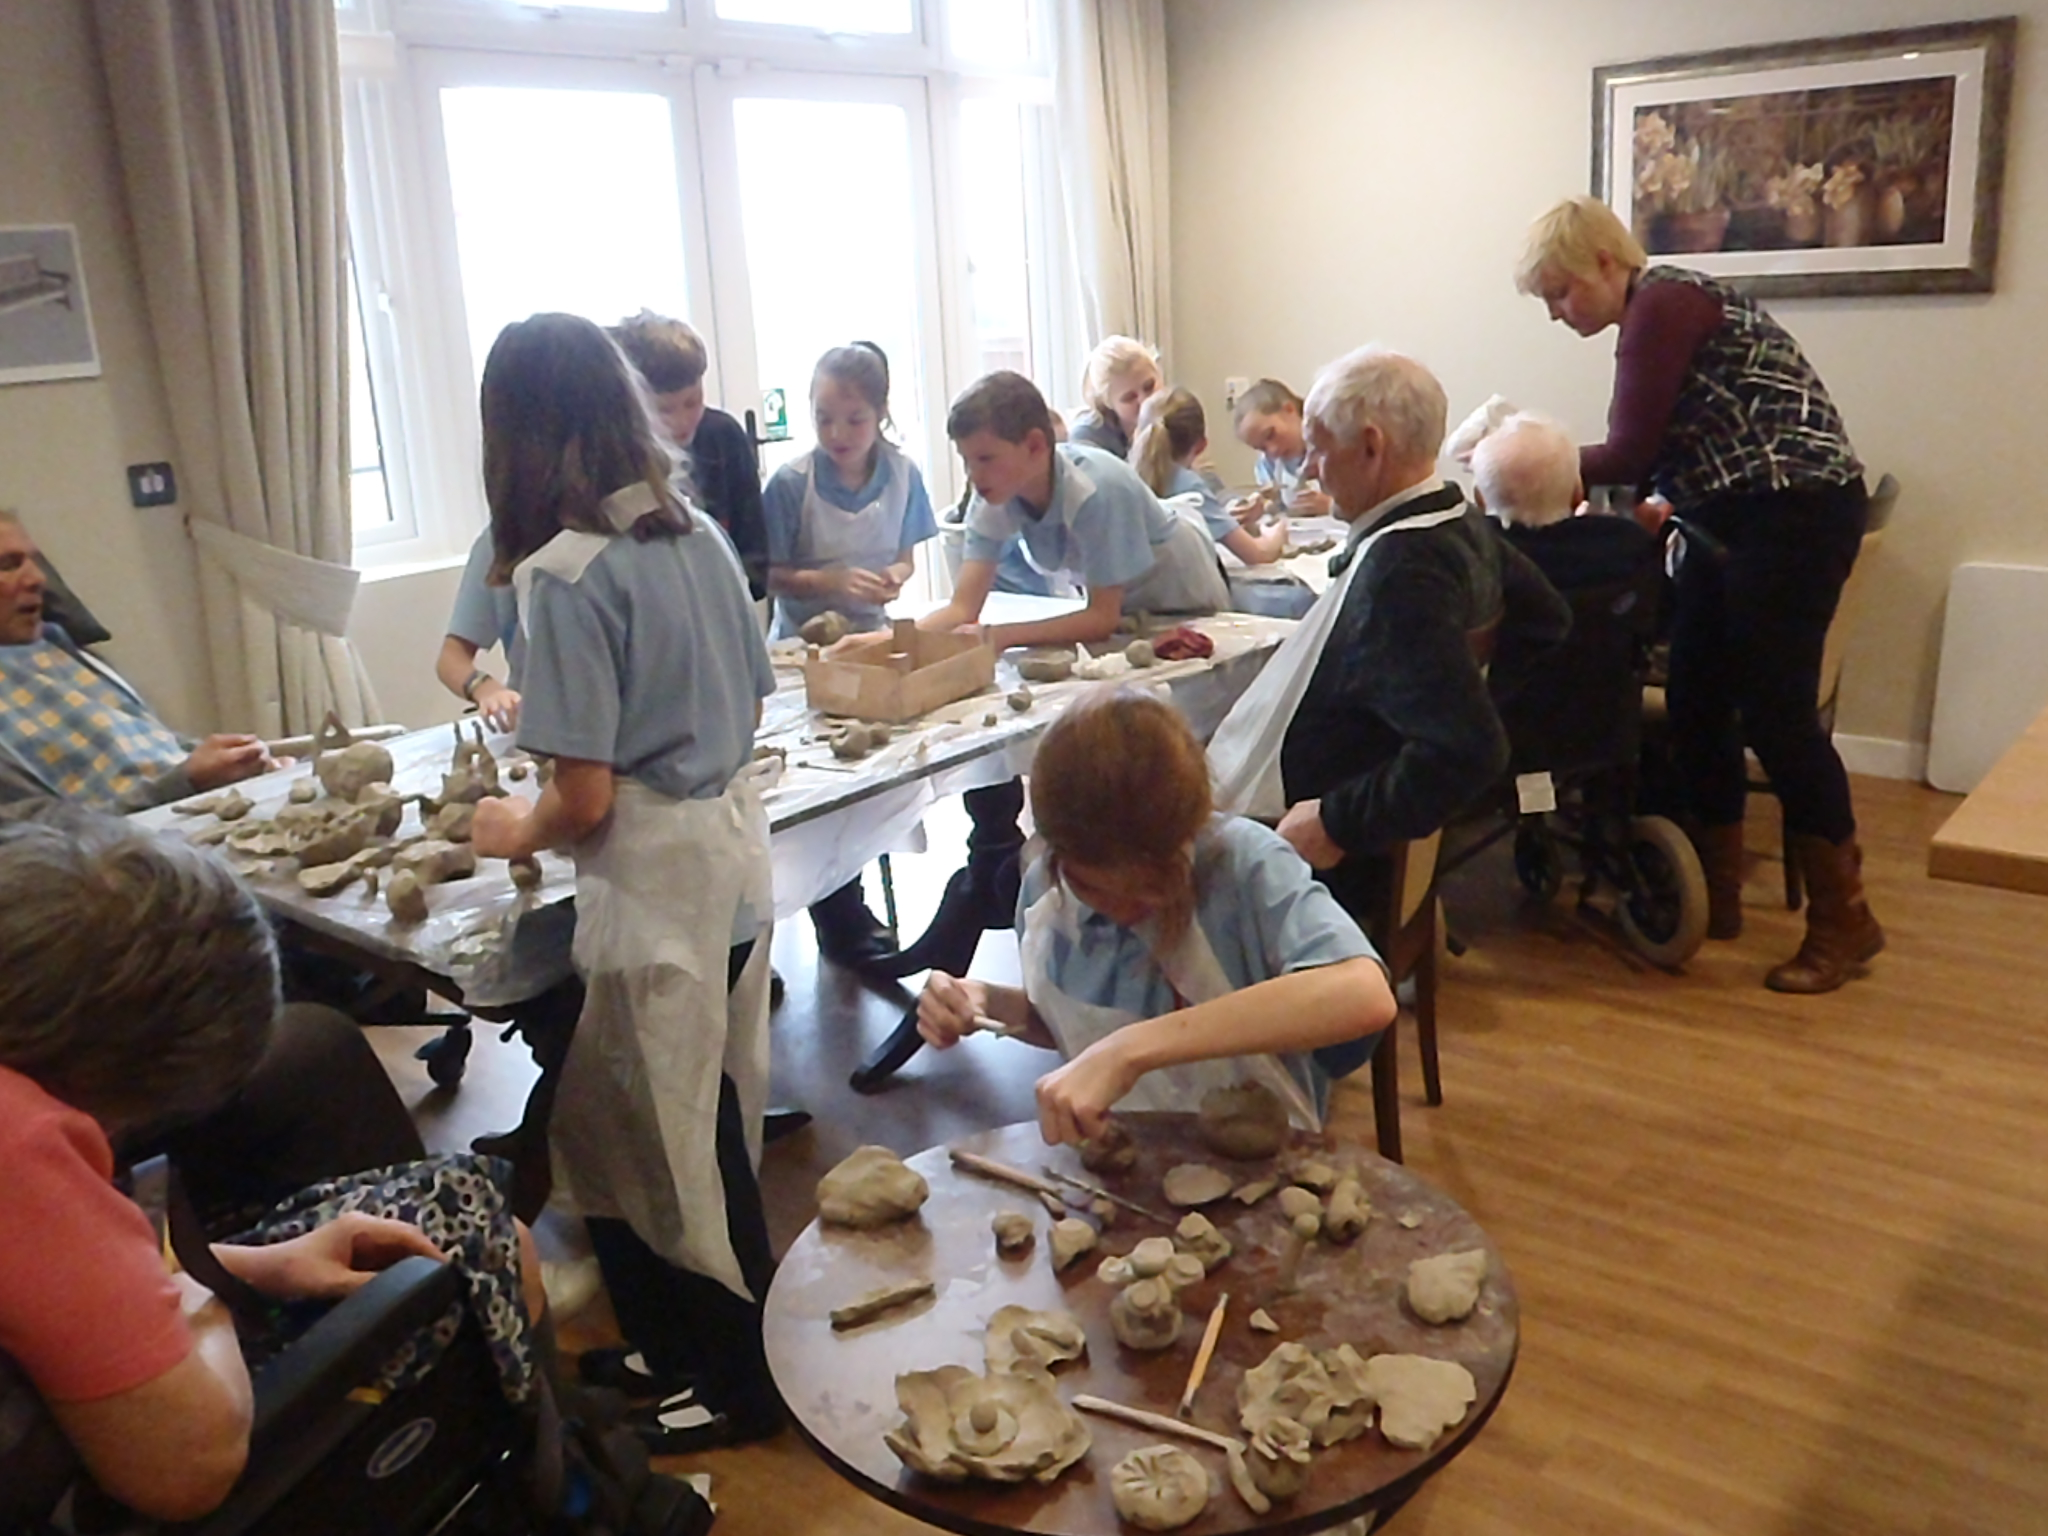 Clay Modelling With Dementia Patients Rebecca Buck